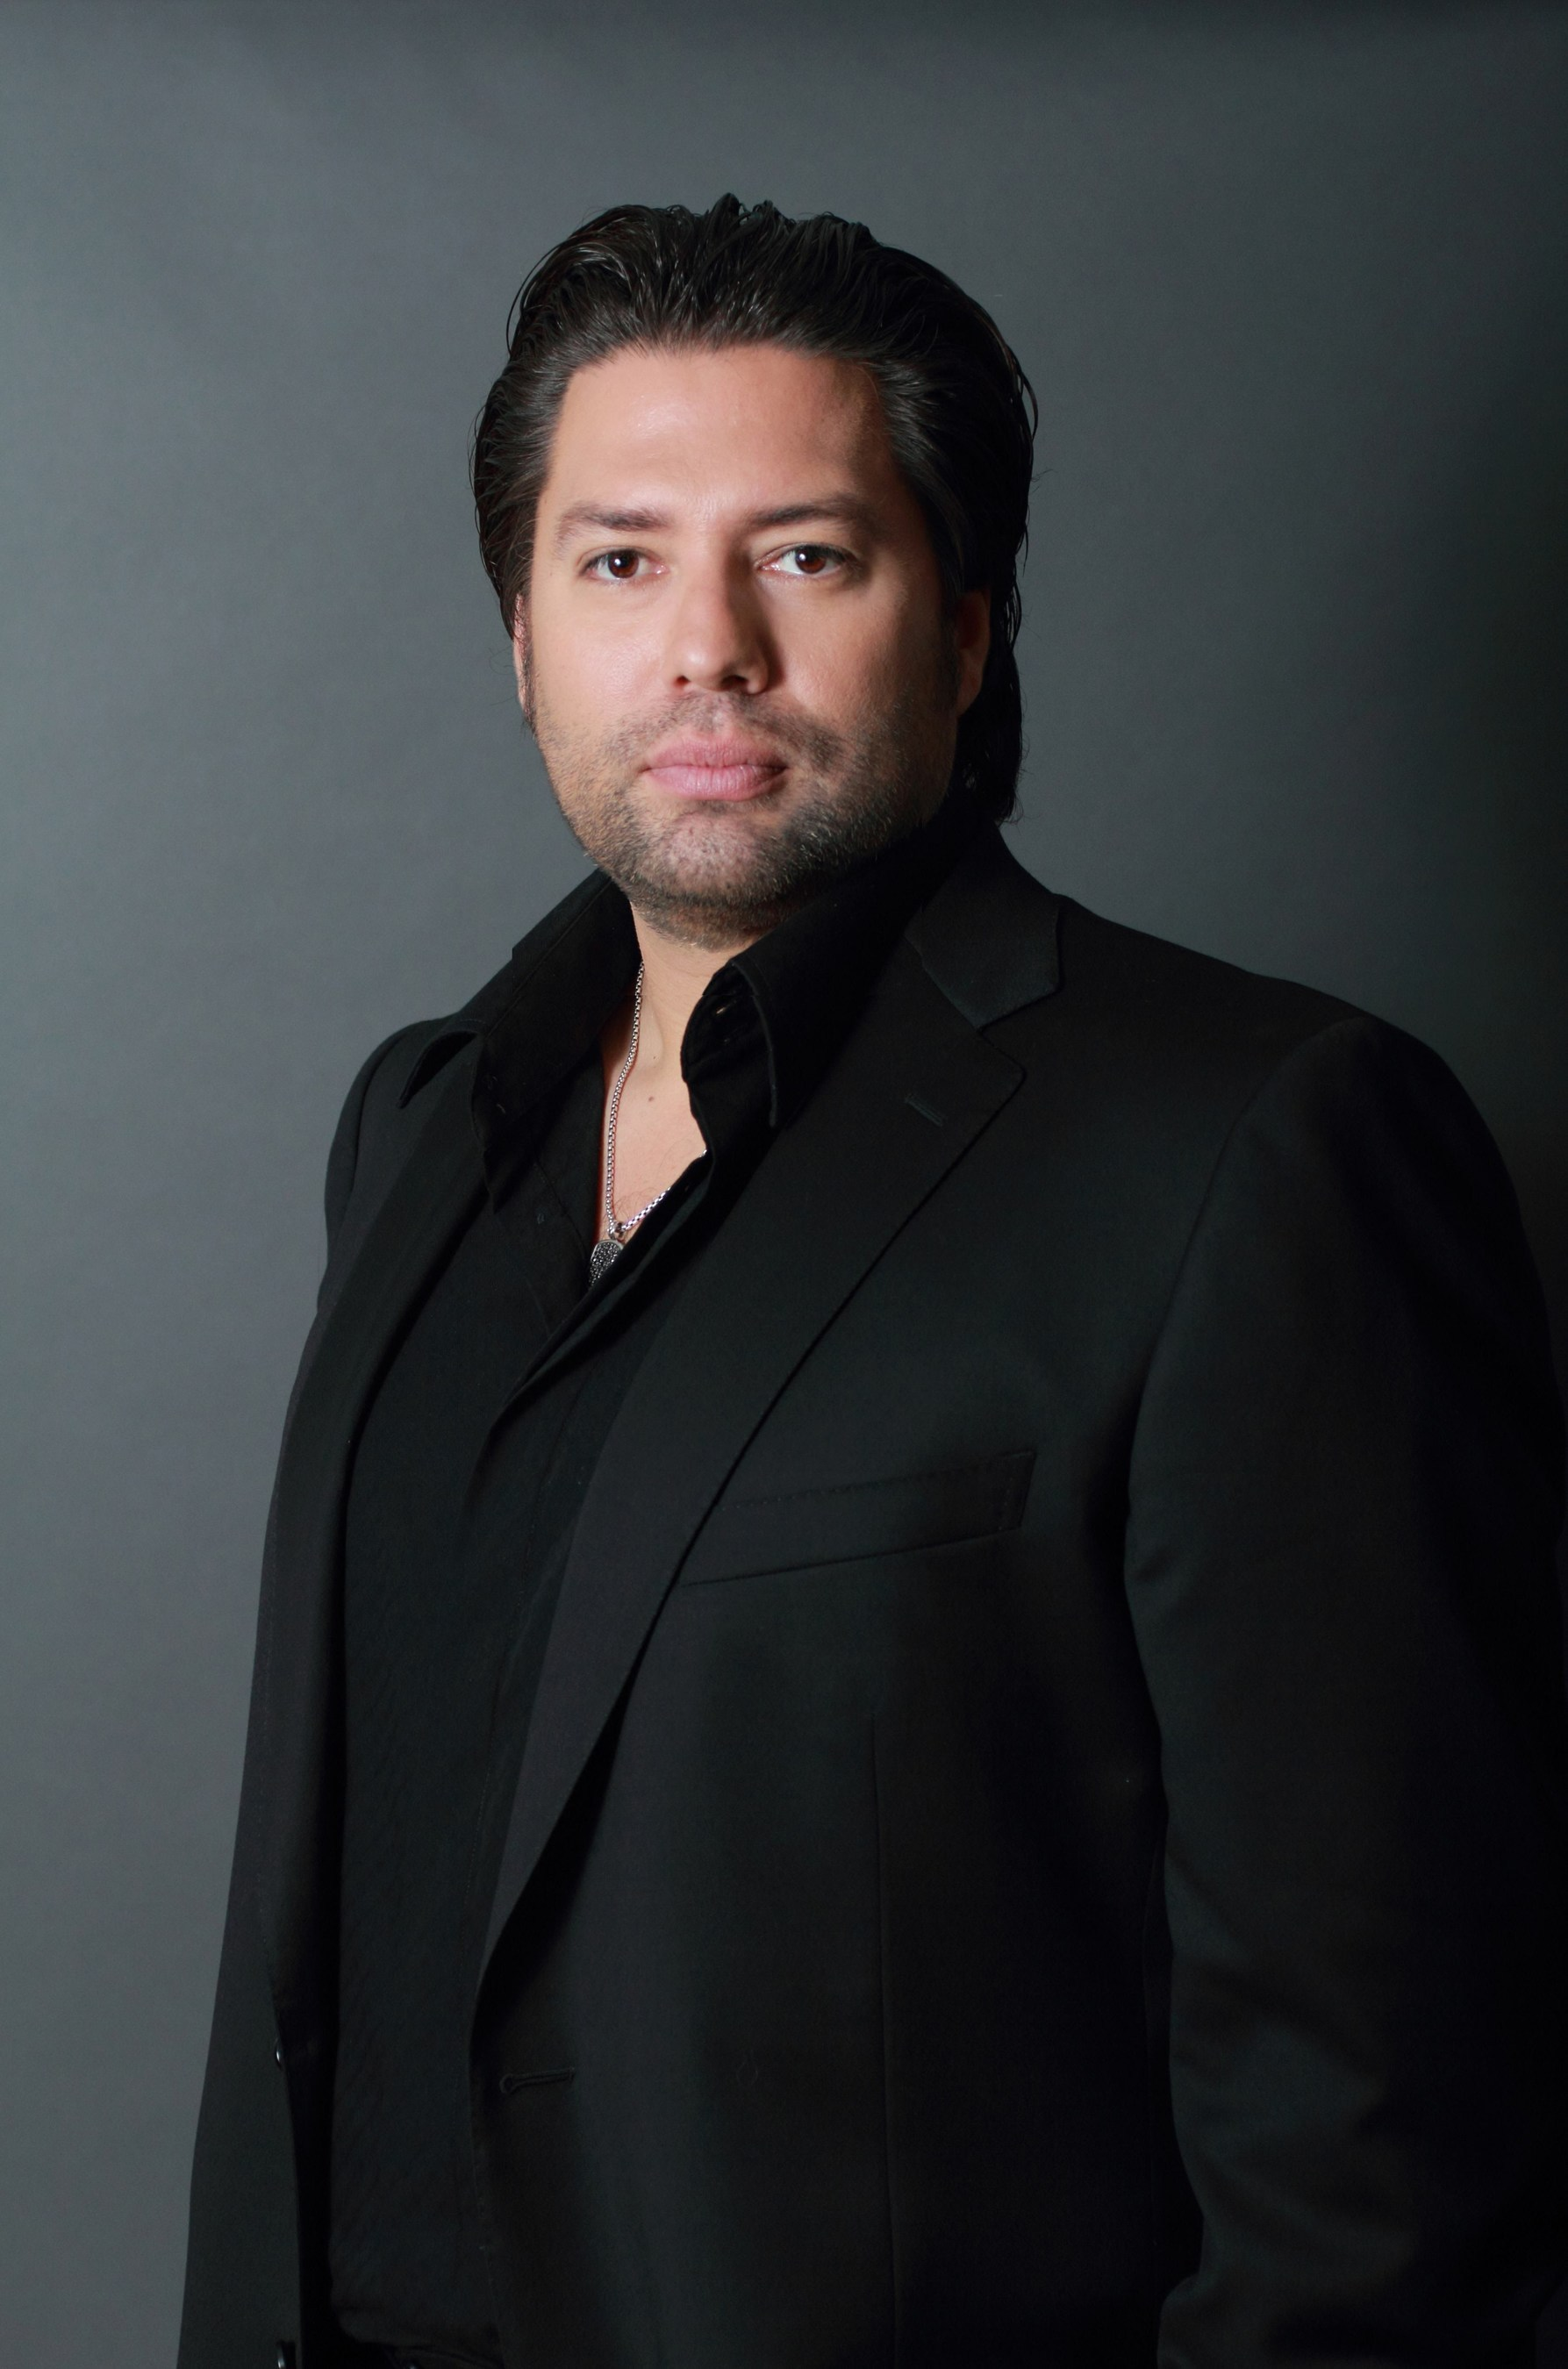 Reality TV Star Armando Montelongo Hosts Biggest ALS Ice Bucket Challenge